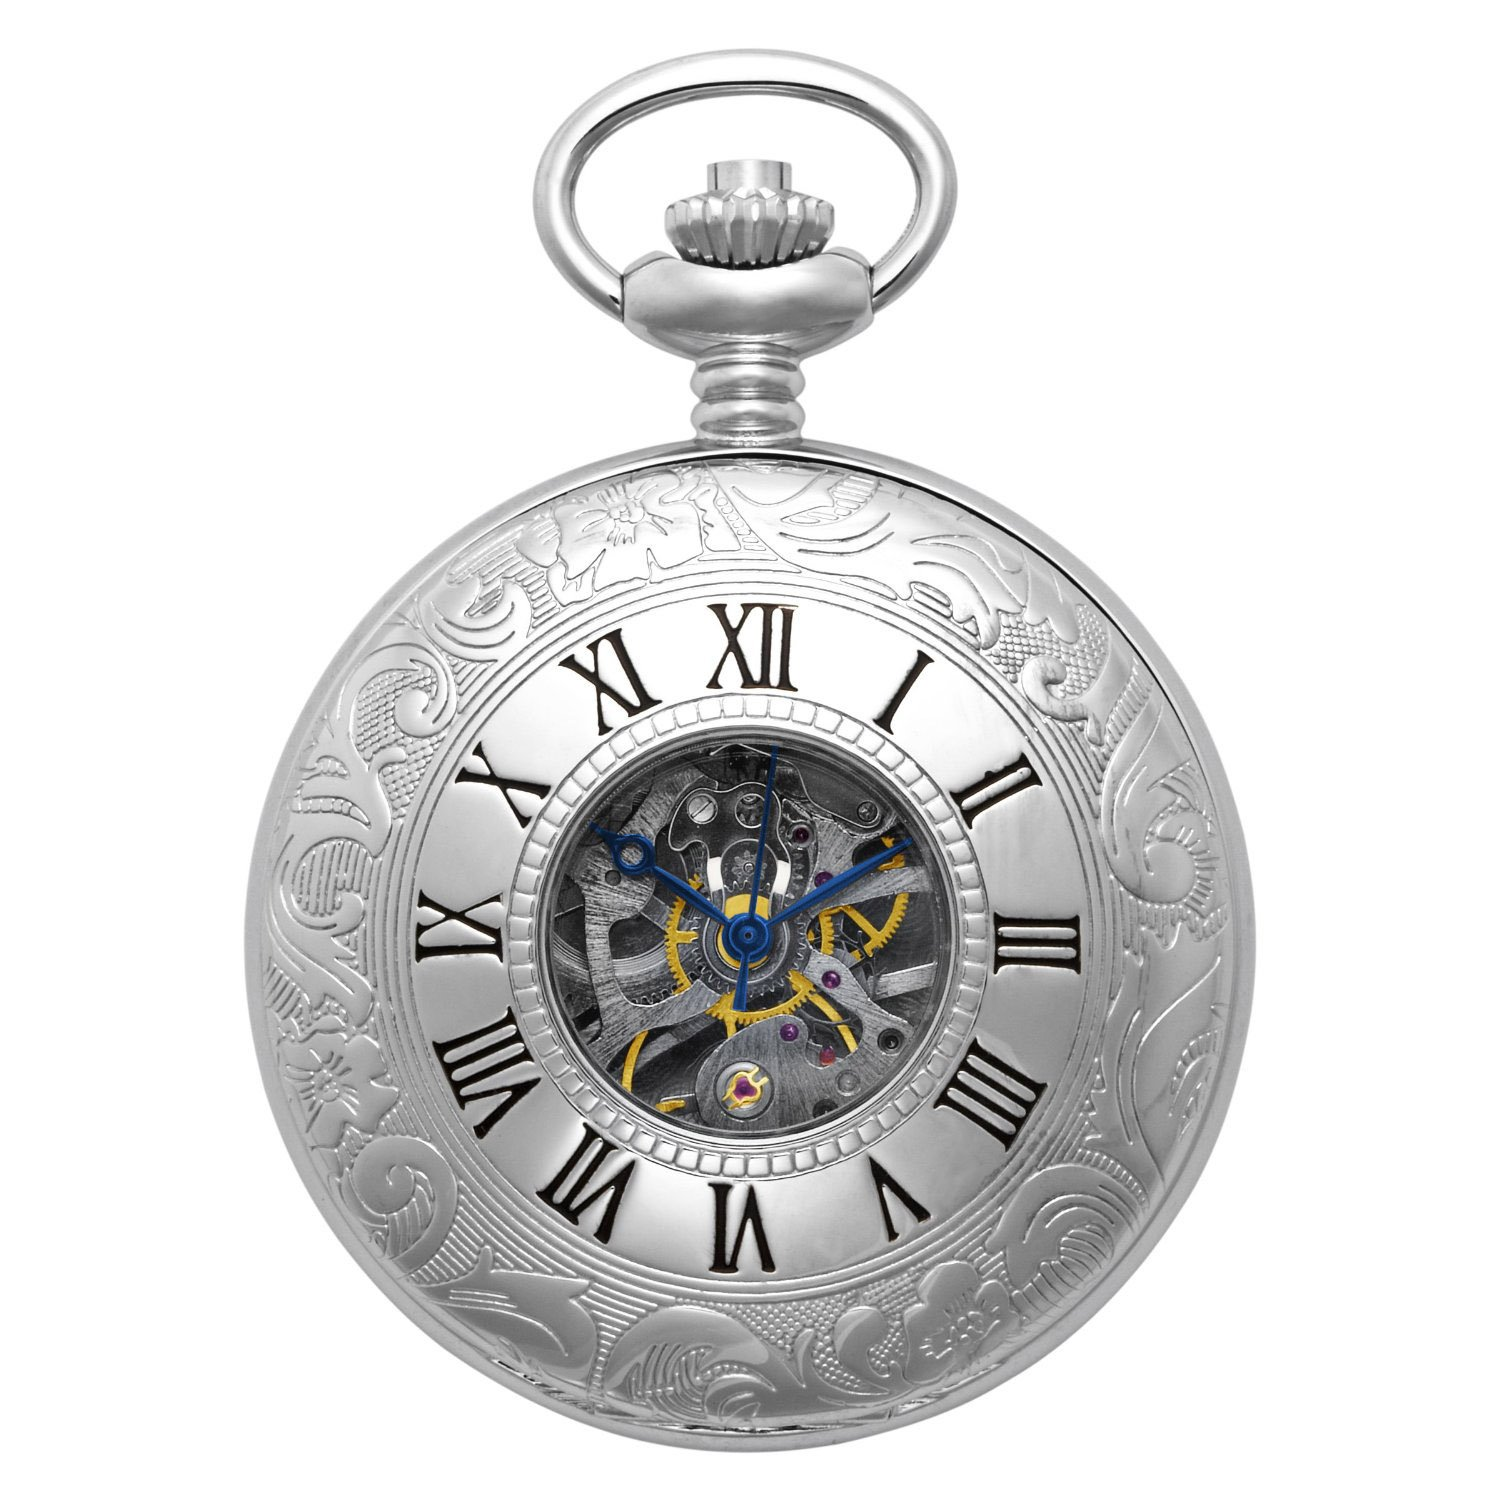 Gotham Men's Silver-Tone Mechanical Pocket Watch with Desktop Stand # GWC14040S-ST